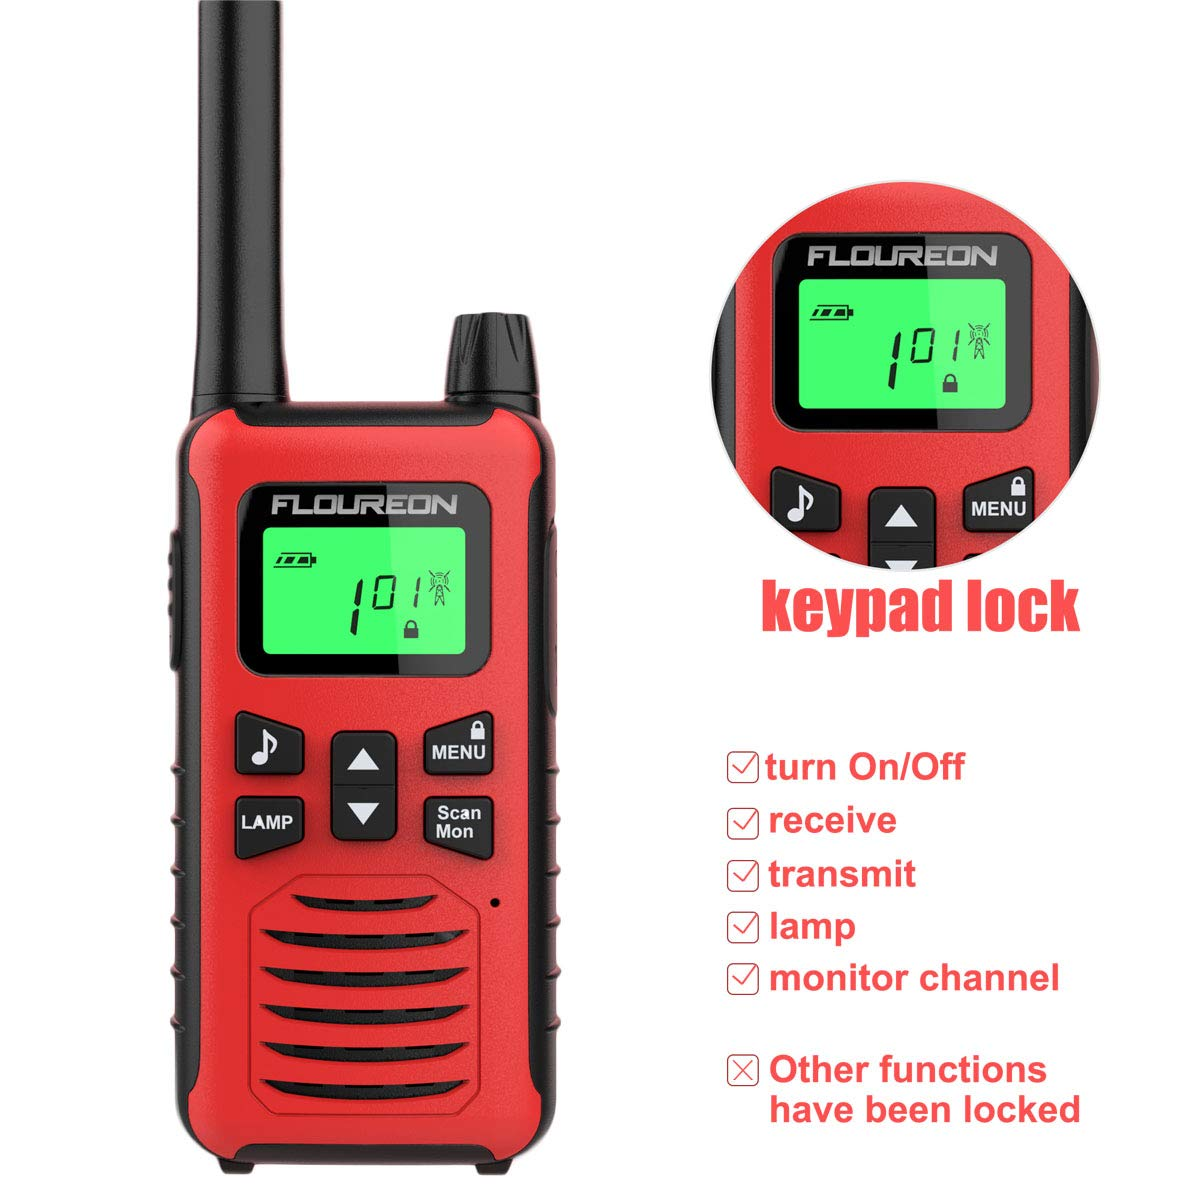 FLOUREON 4 Pack Walkie Talkies Kids 16 Channel Toy Interphone Two Way Radio with LCD Display Long Range Rechargeale for Field Survival Biking Hiking Red